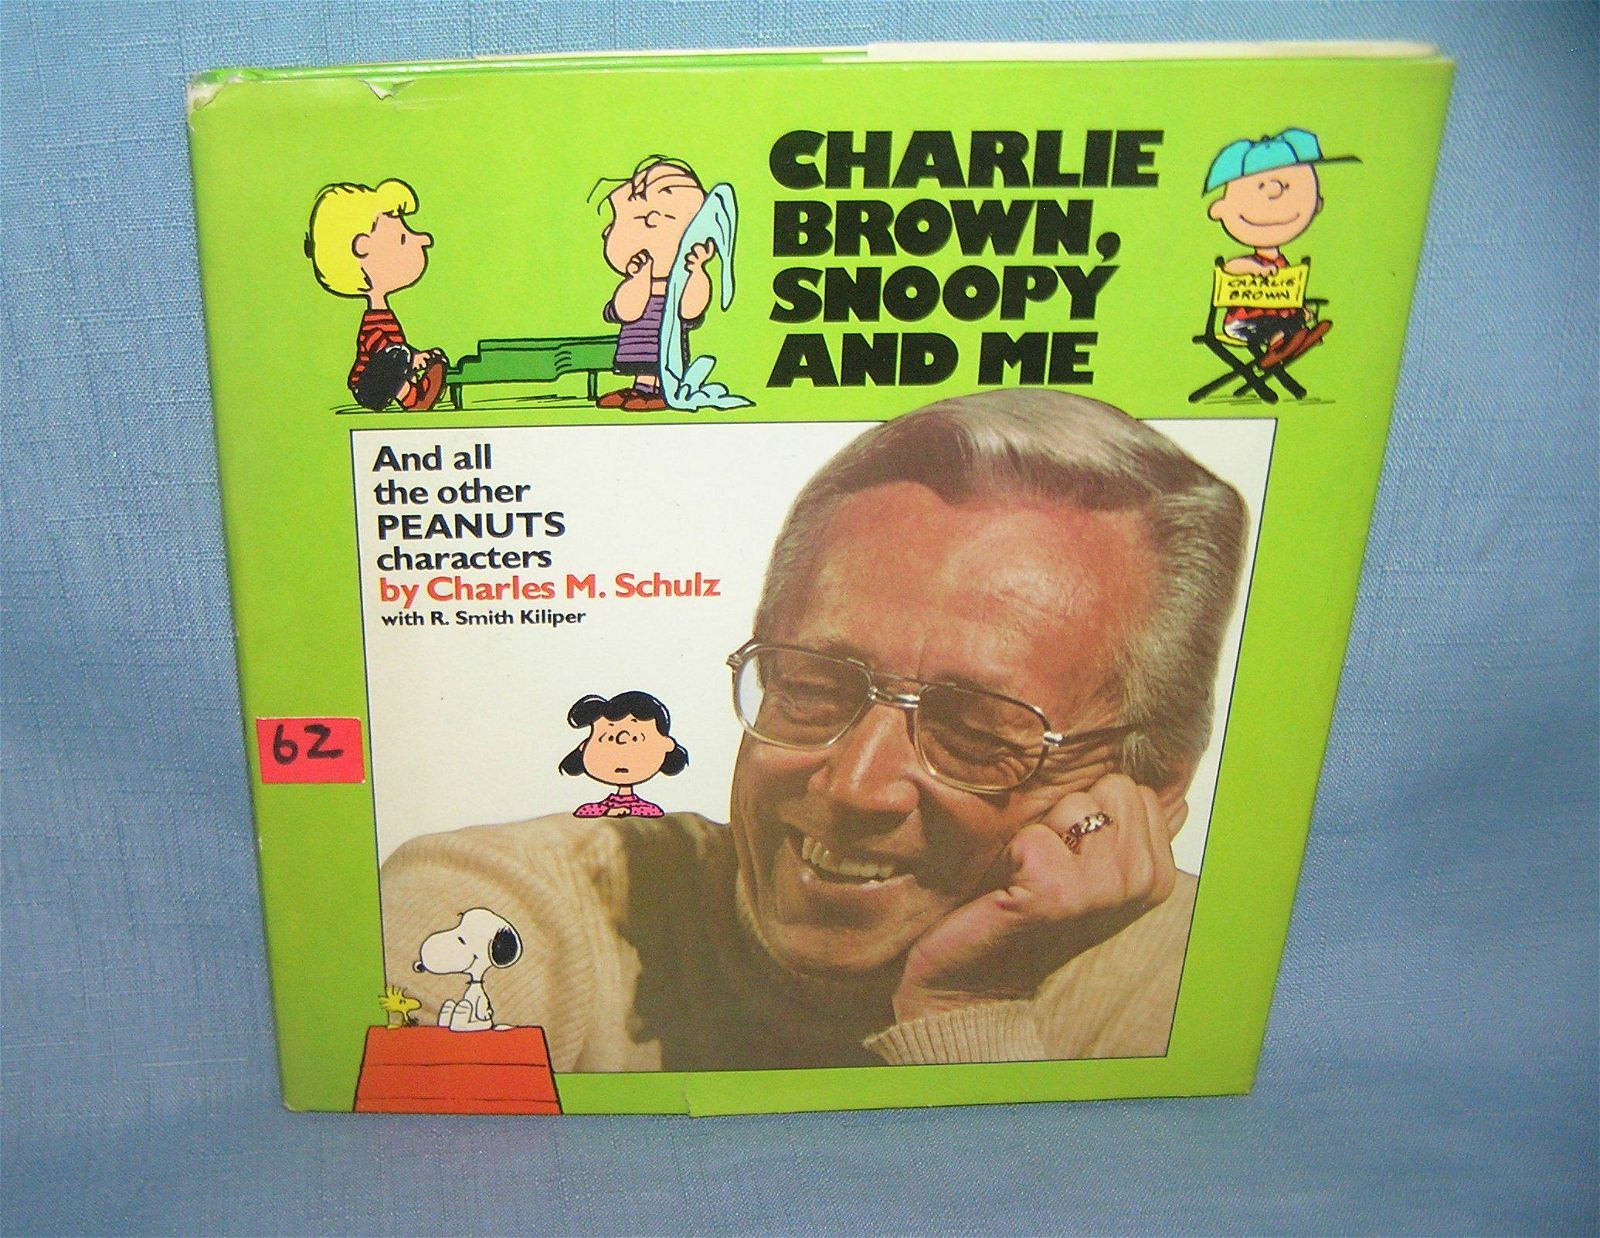 Charley Brown, Snoopy and me by Charles M. Schulz